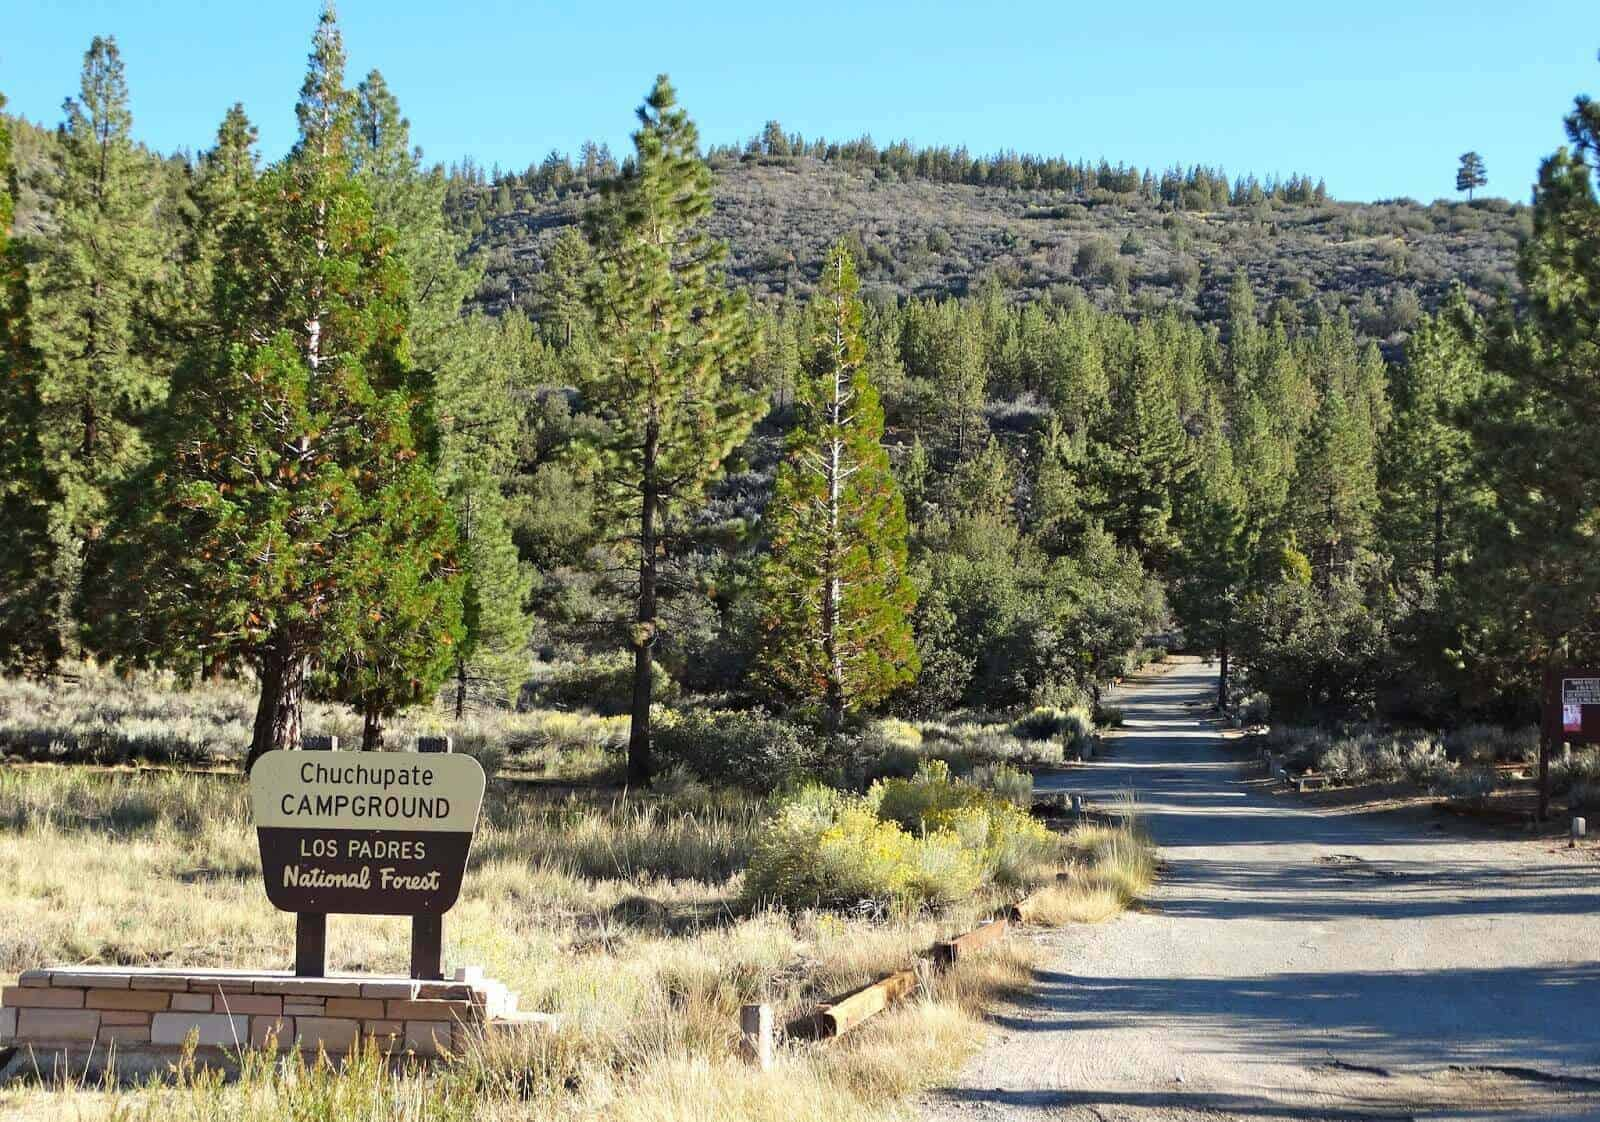 Chuchupate Campground - Parks Management Company - Get